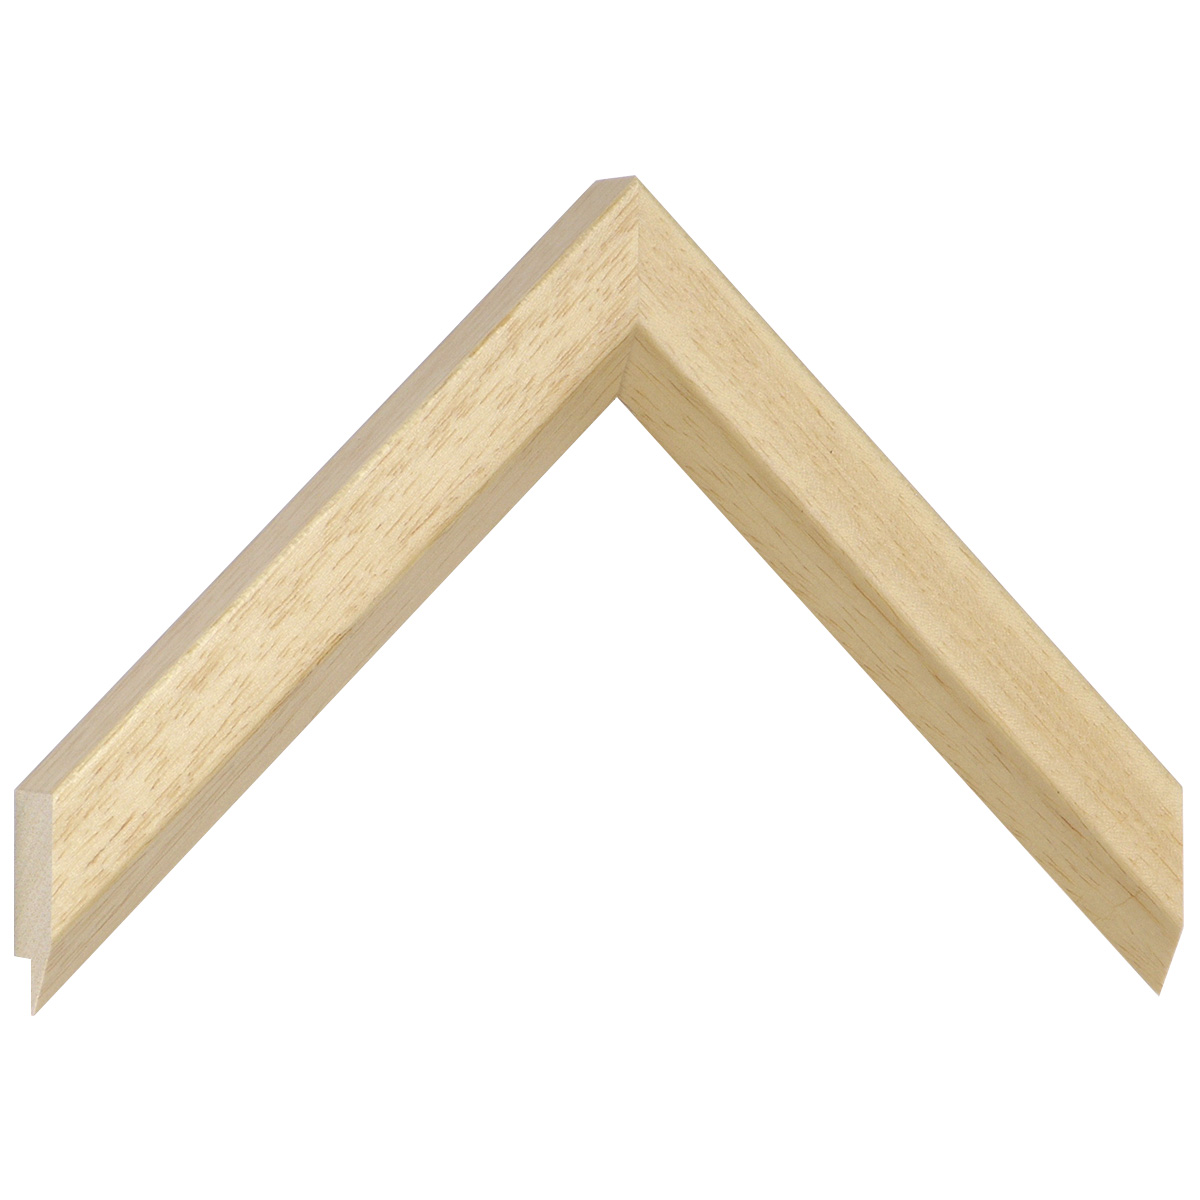 Moulding ayous, width 28mm height 20 - Natural